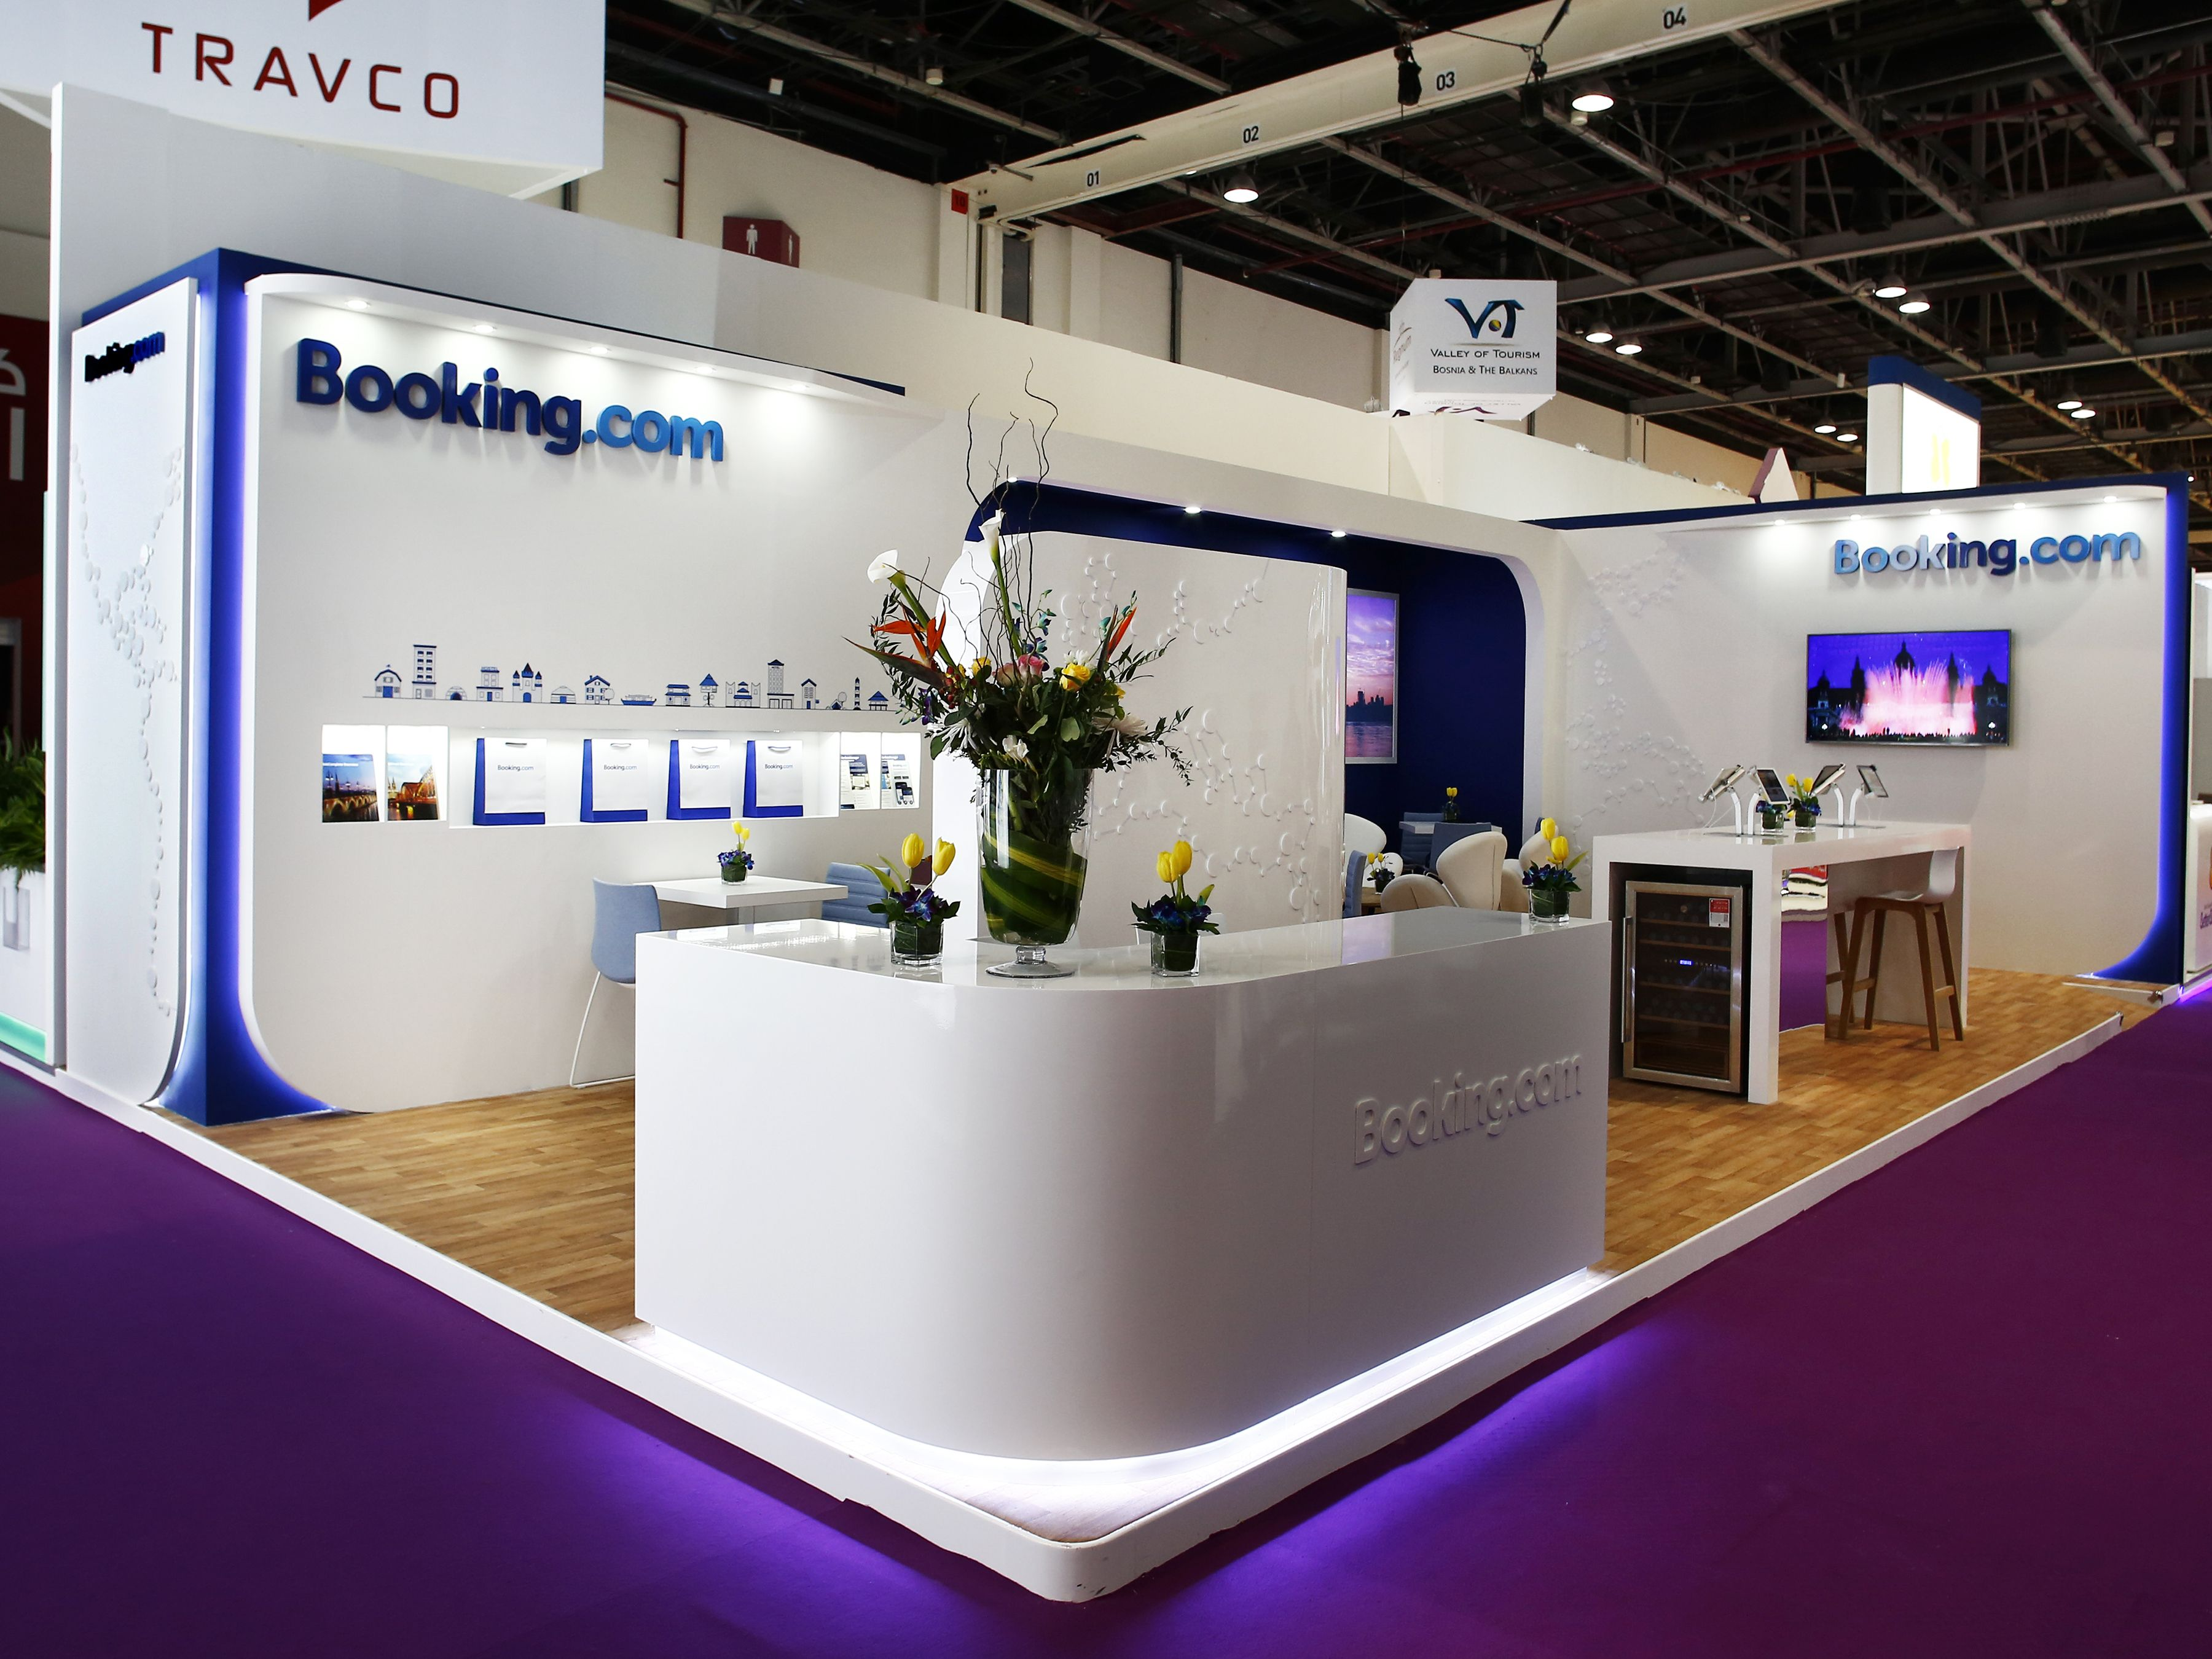 Exhibition Stall Booking : Booking exhibition stand design by elevations uk for